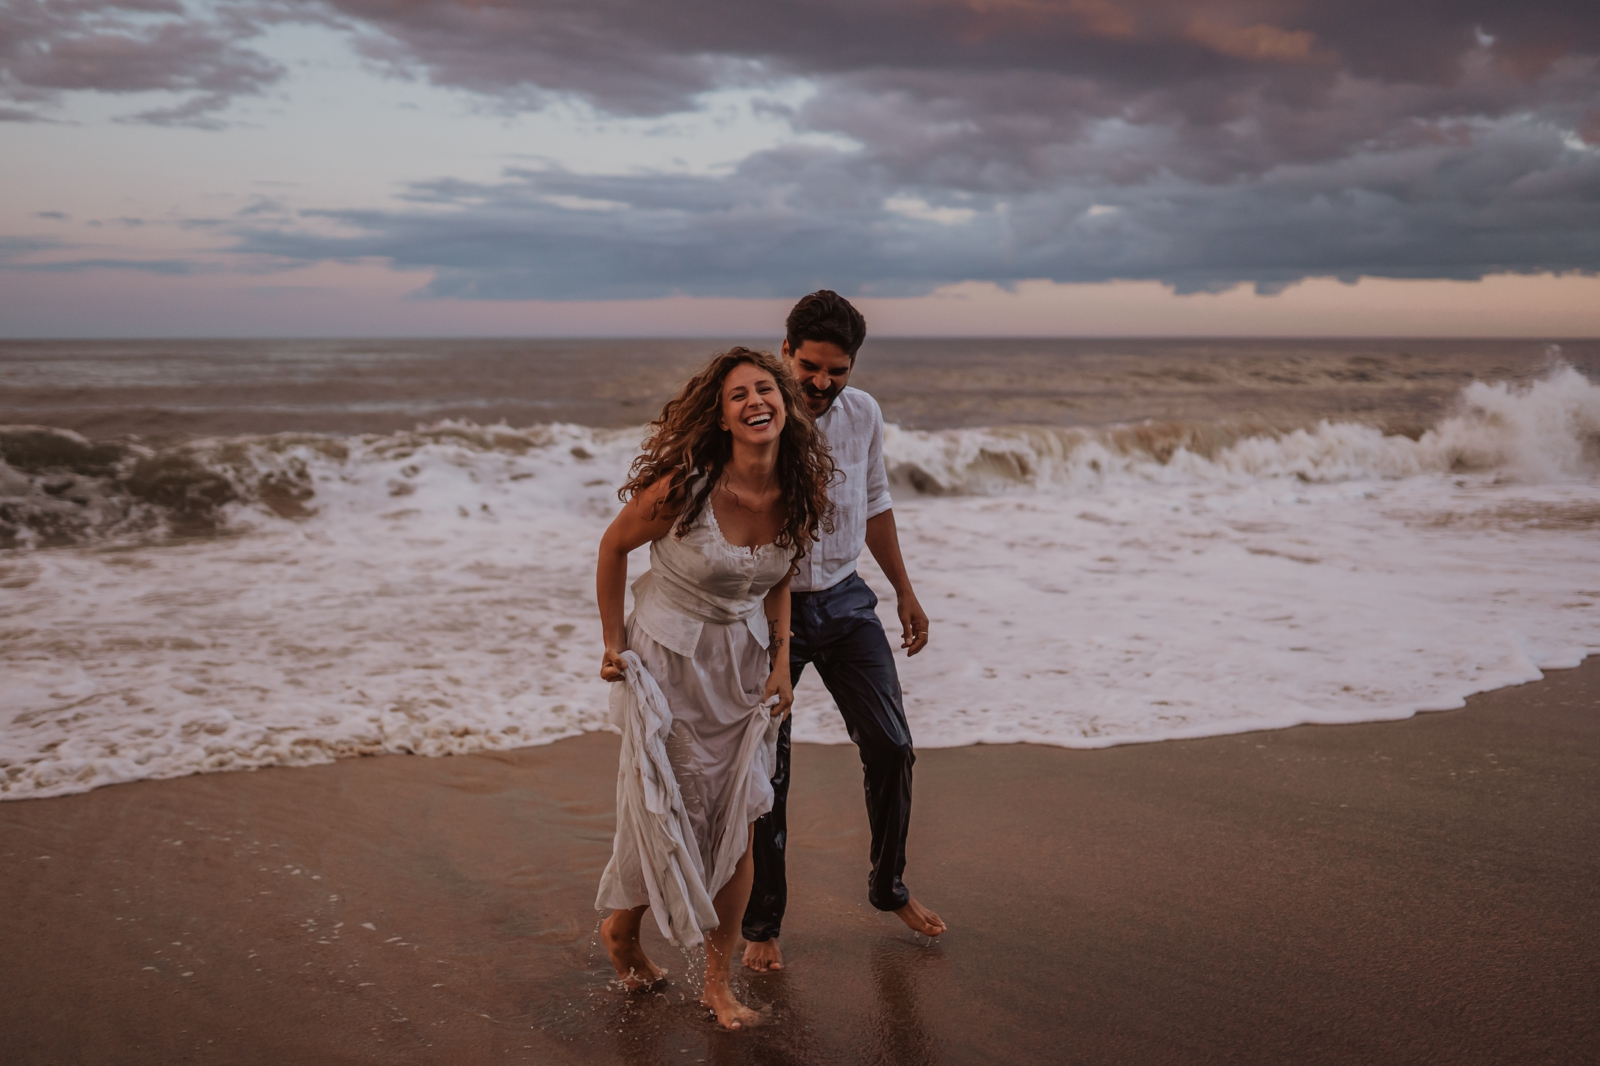 JJP_Nikki & Bud_Shadmoor_Montauk_NY_Cliff Engagement Session226.jpg_blog.jpg